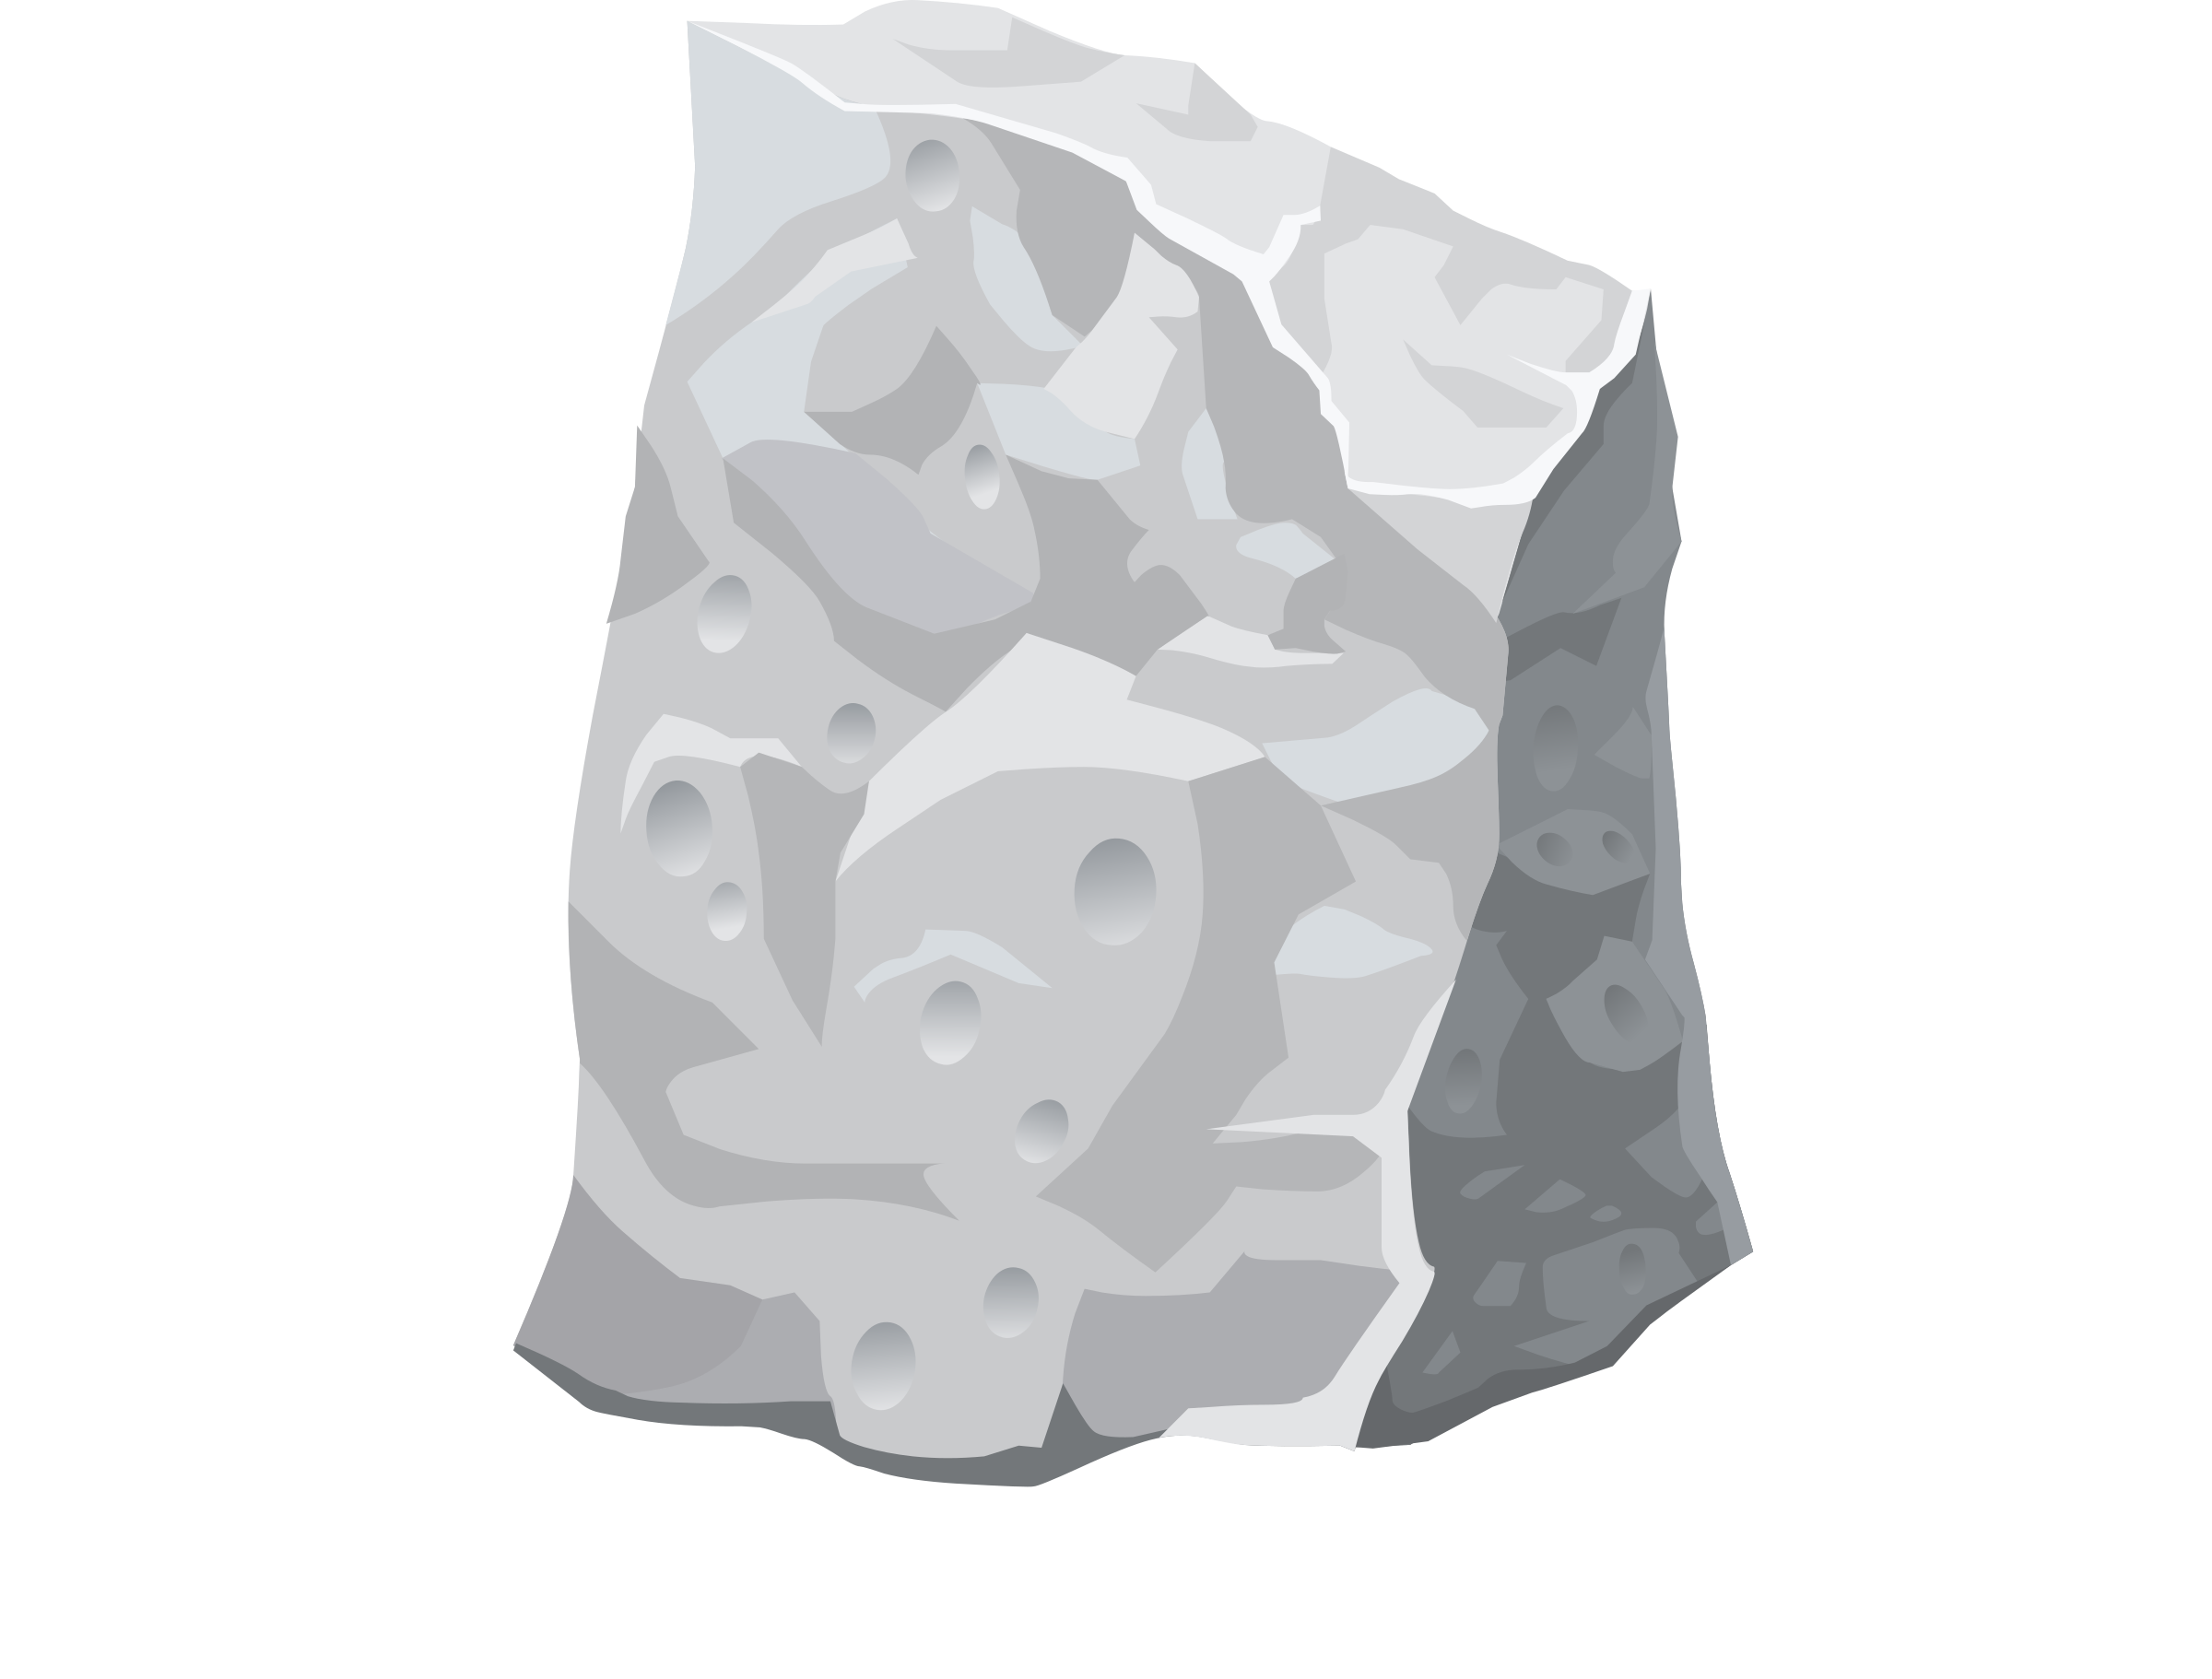 Harvestable Resources Rock Dullite 1 by glitch